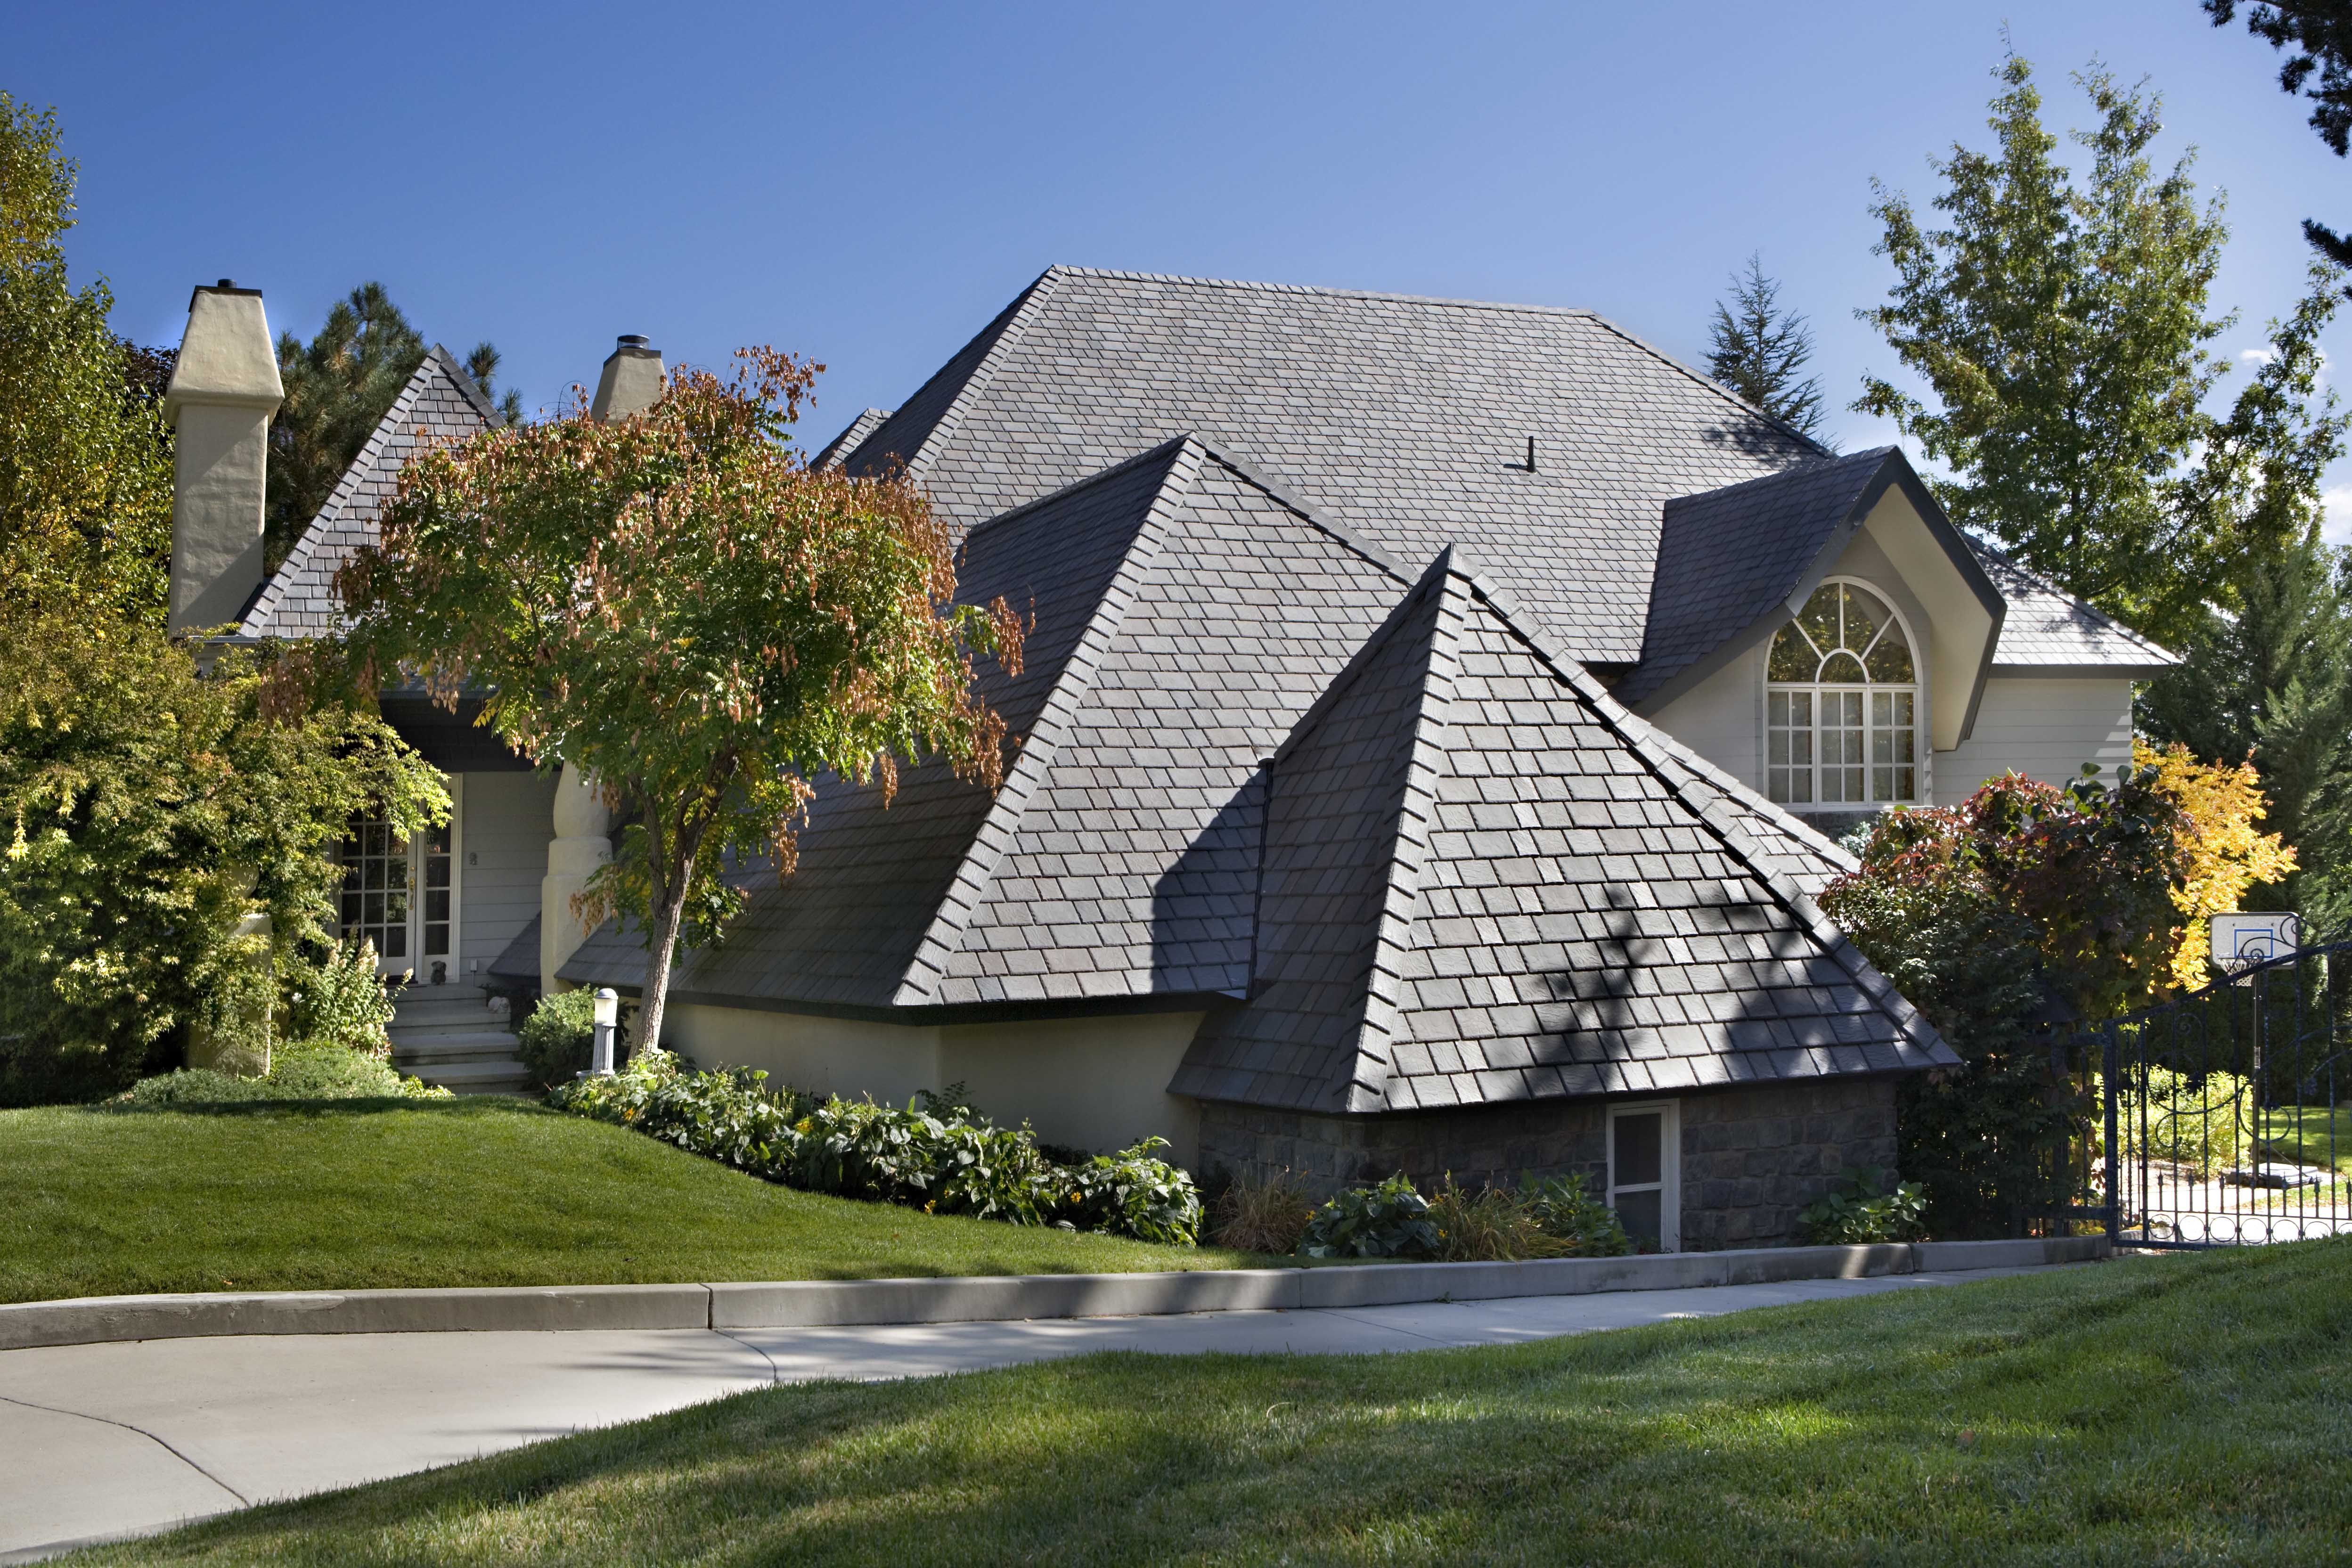 Brownstone Blend Shake Roof Roof Galvanized Roofing